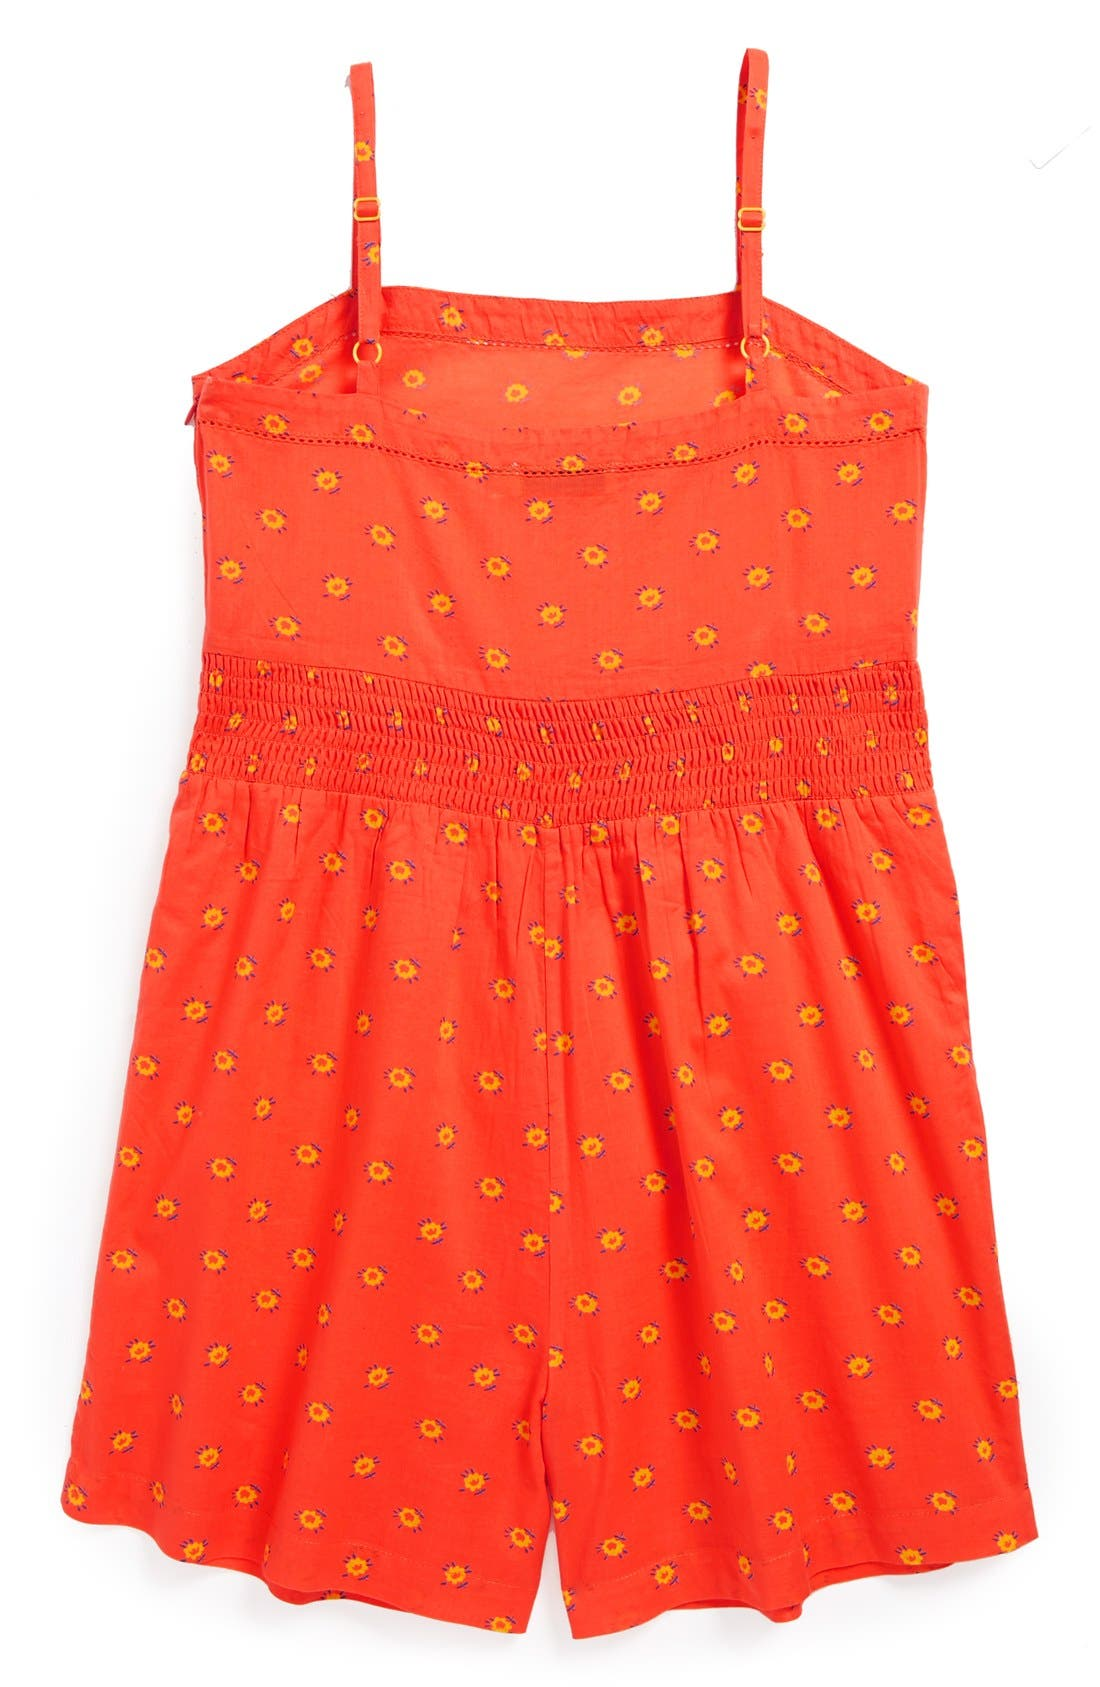 Alternate Image 2  - Stella McCartney Floral Print Cotton Romper (Toddler Girls, Little Girls & Big Girls)